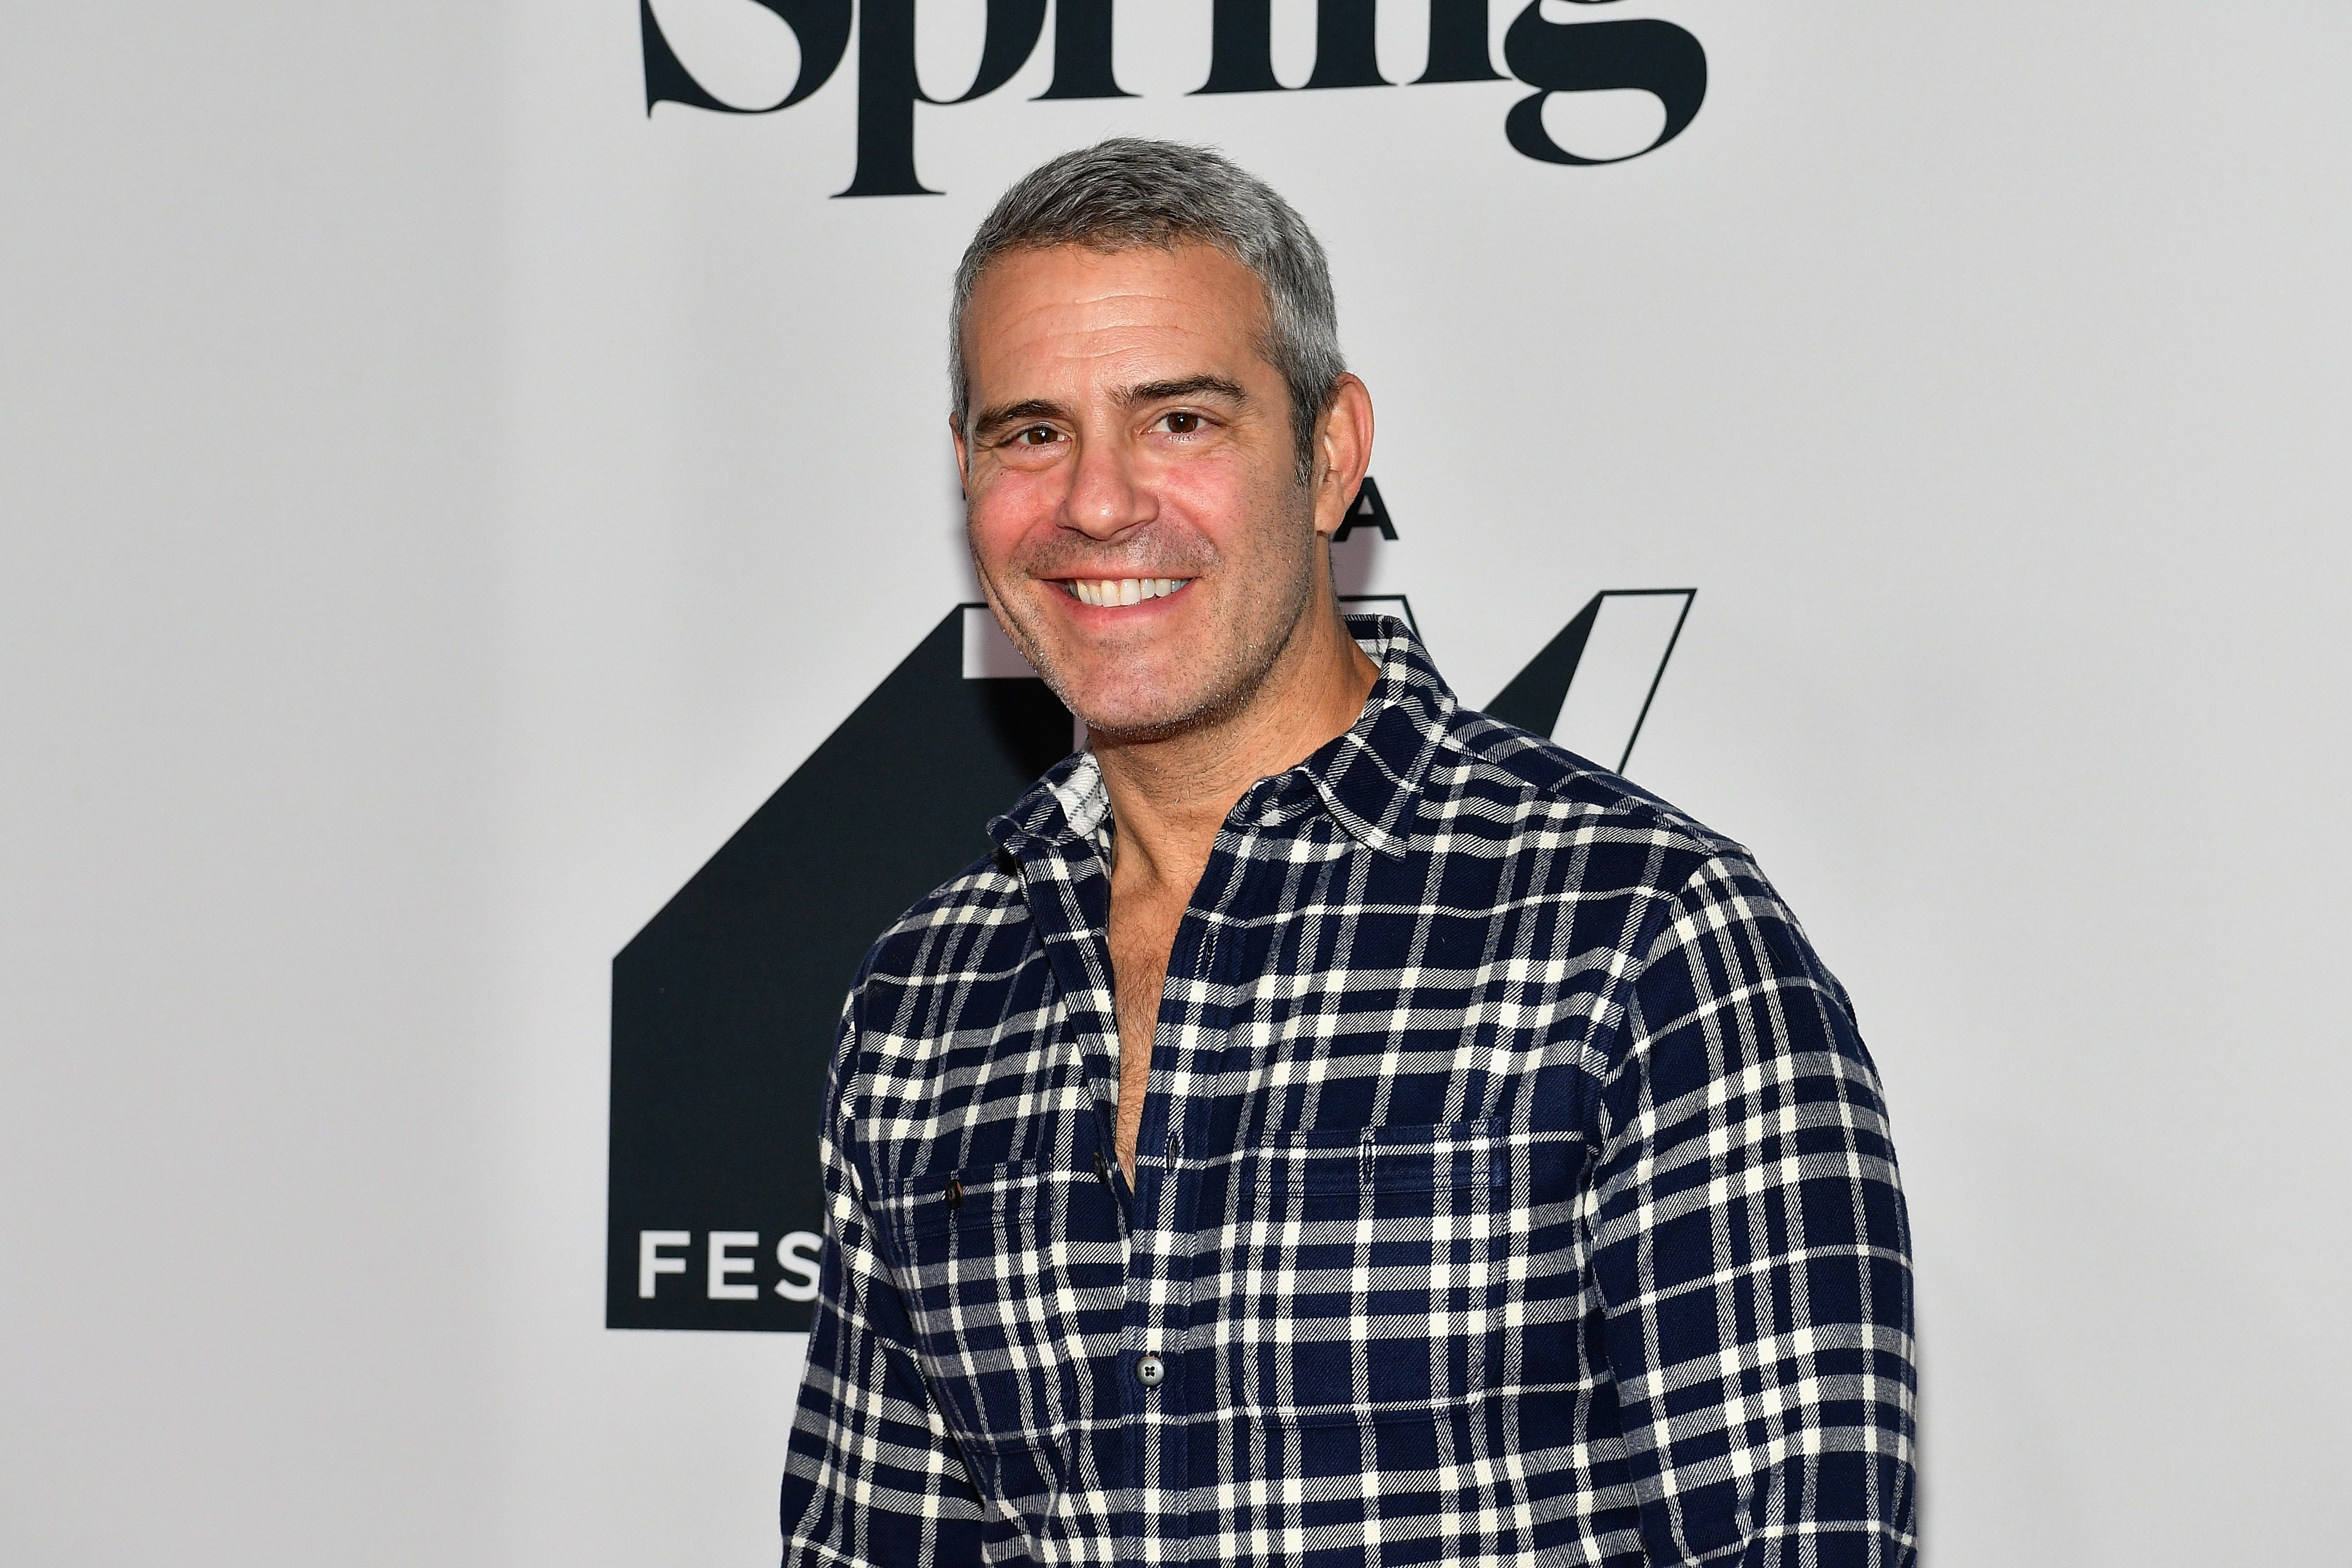 Andy Cohen attends the Tribeca talks panel during the 2018 Tribeca TV Festival on September 23, 2018. | Photo: GettyImages